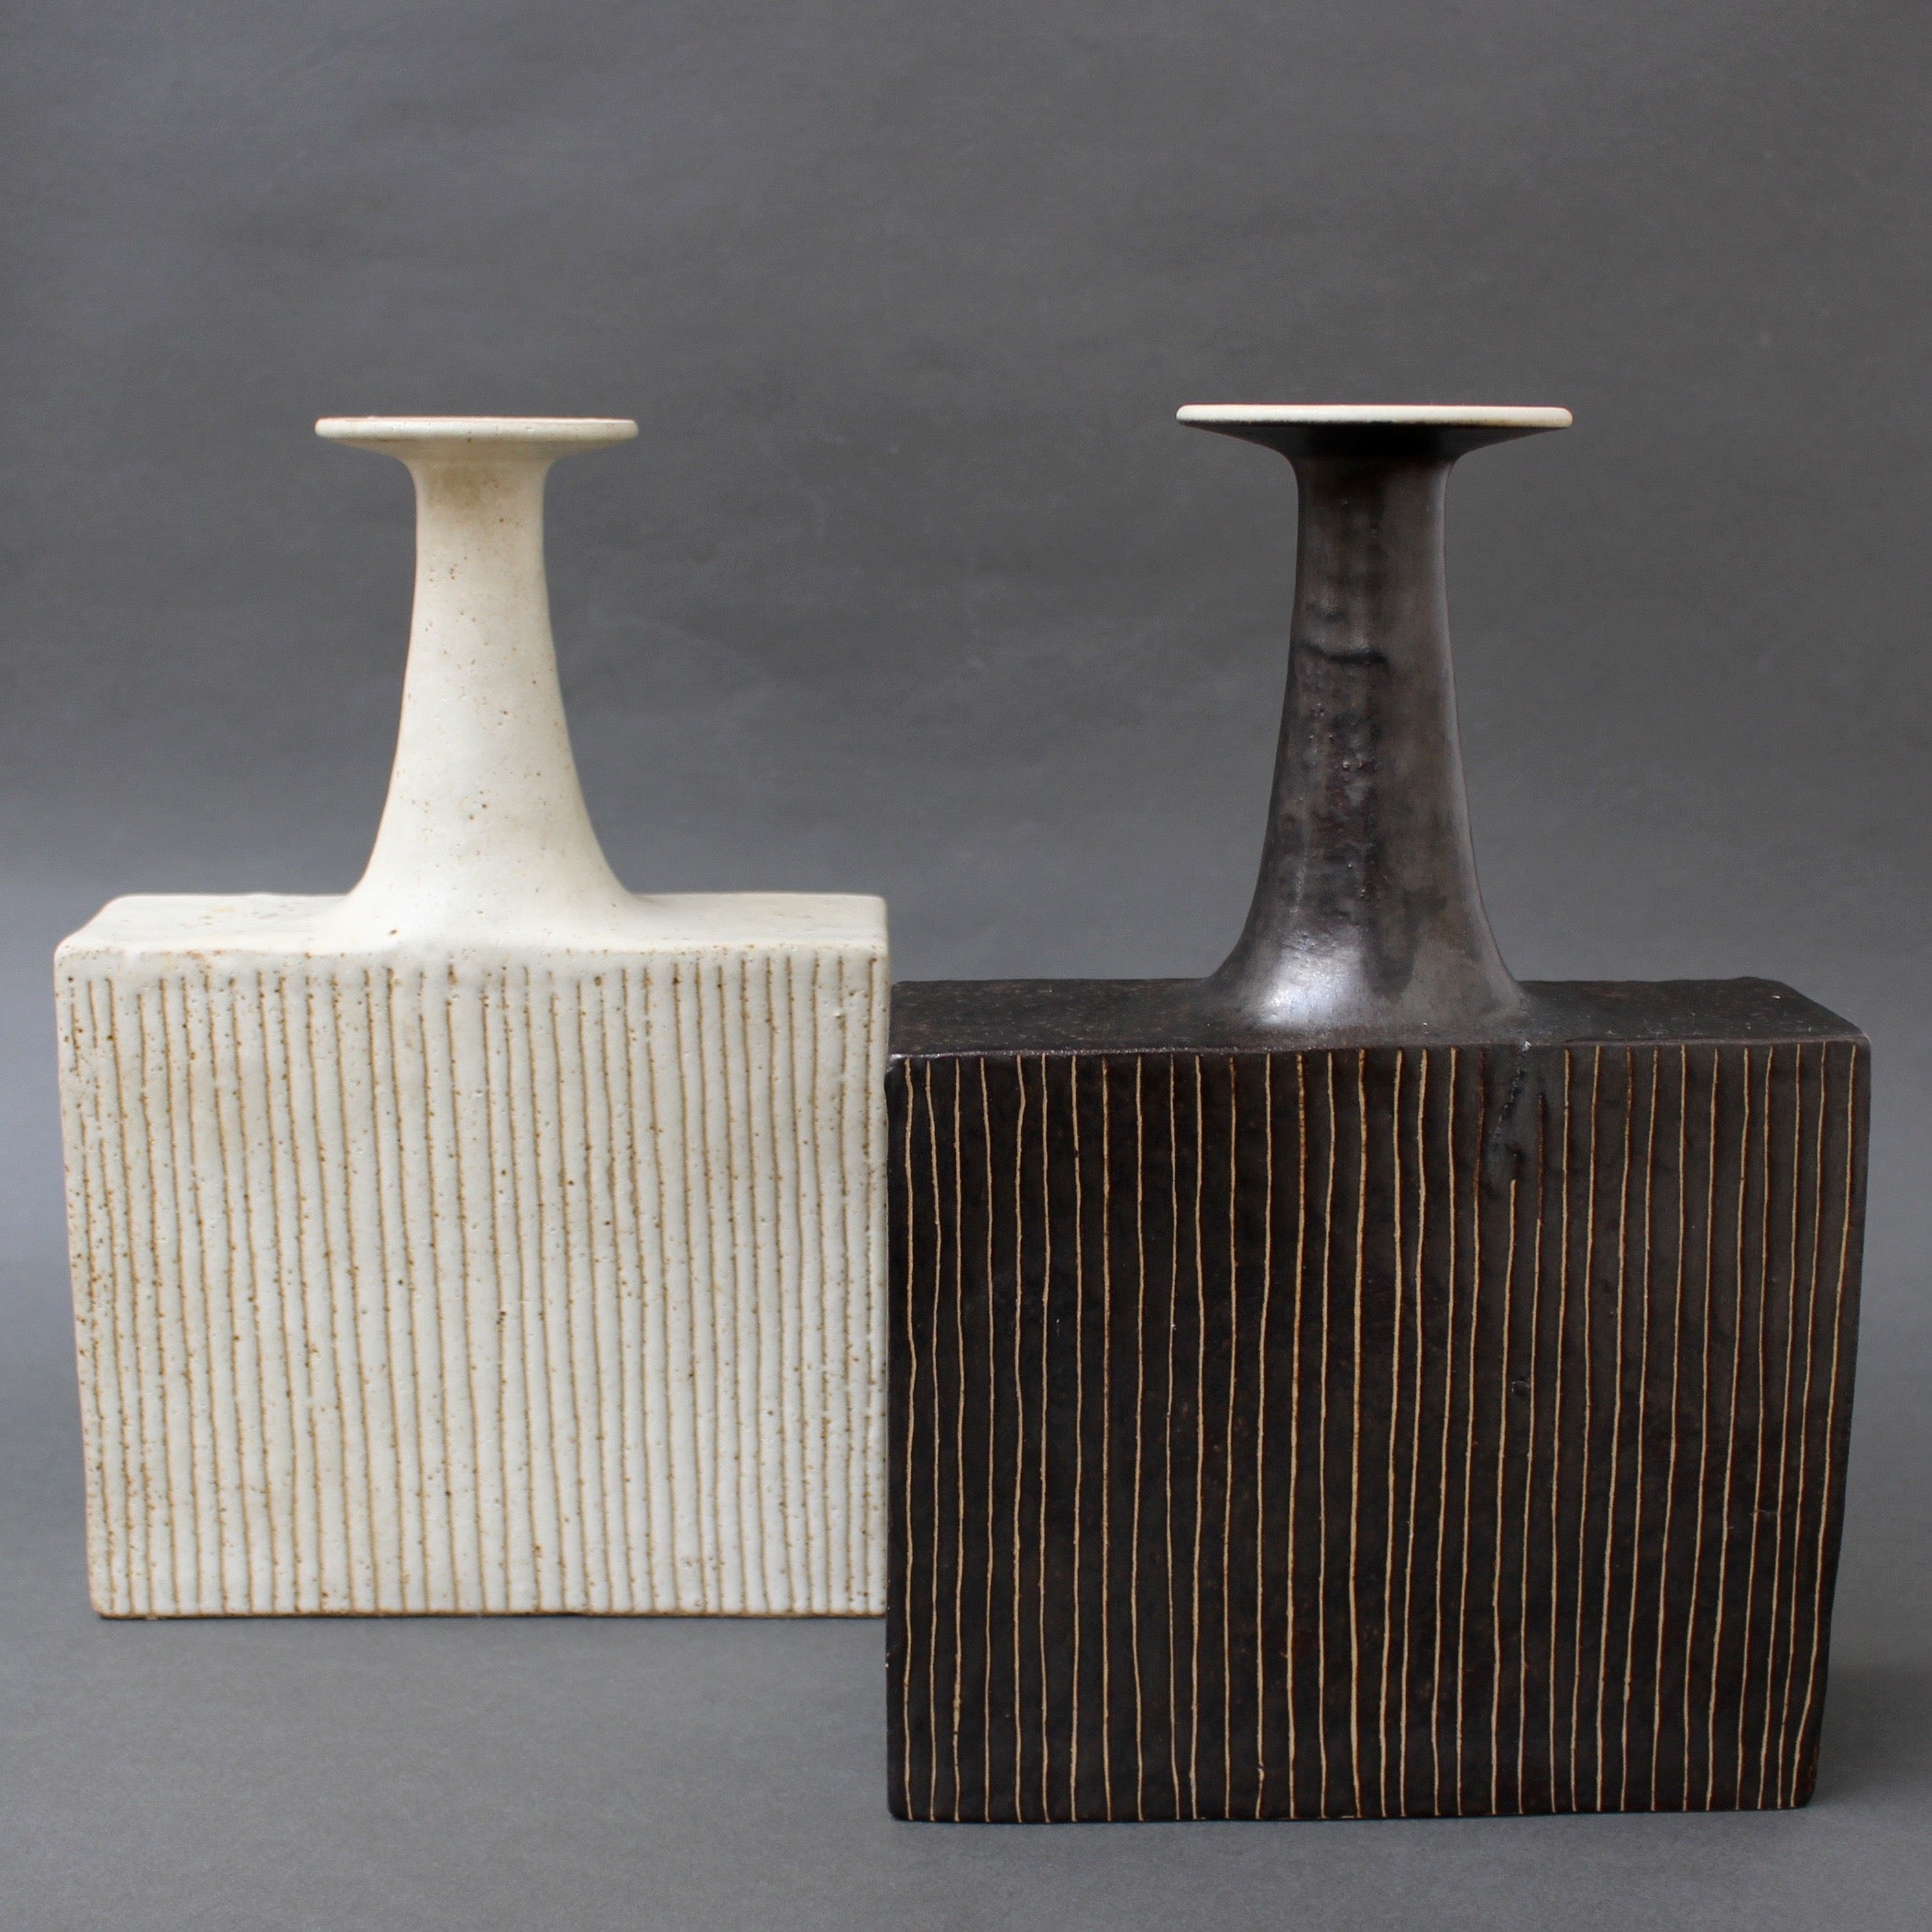 Pair of Ceramic Vases with Line Motif by Bruno Gambone (circa 1970s)